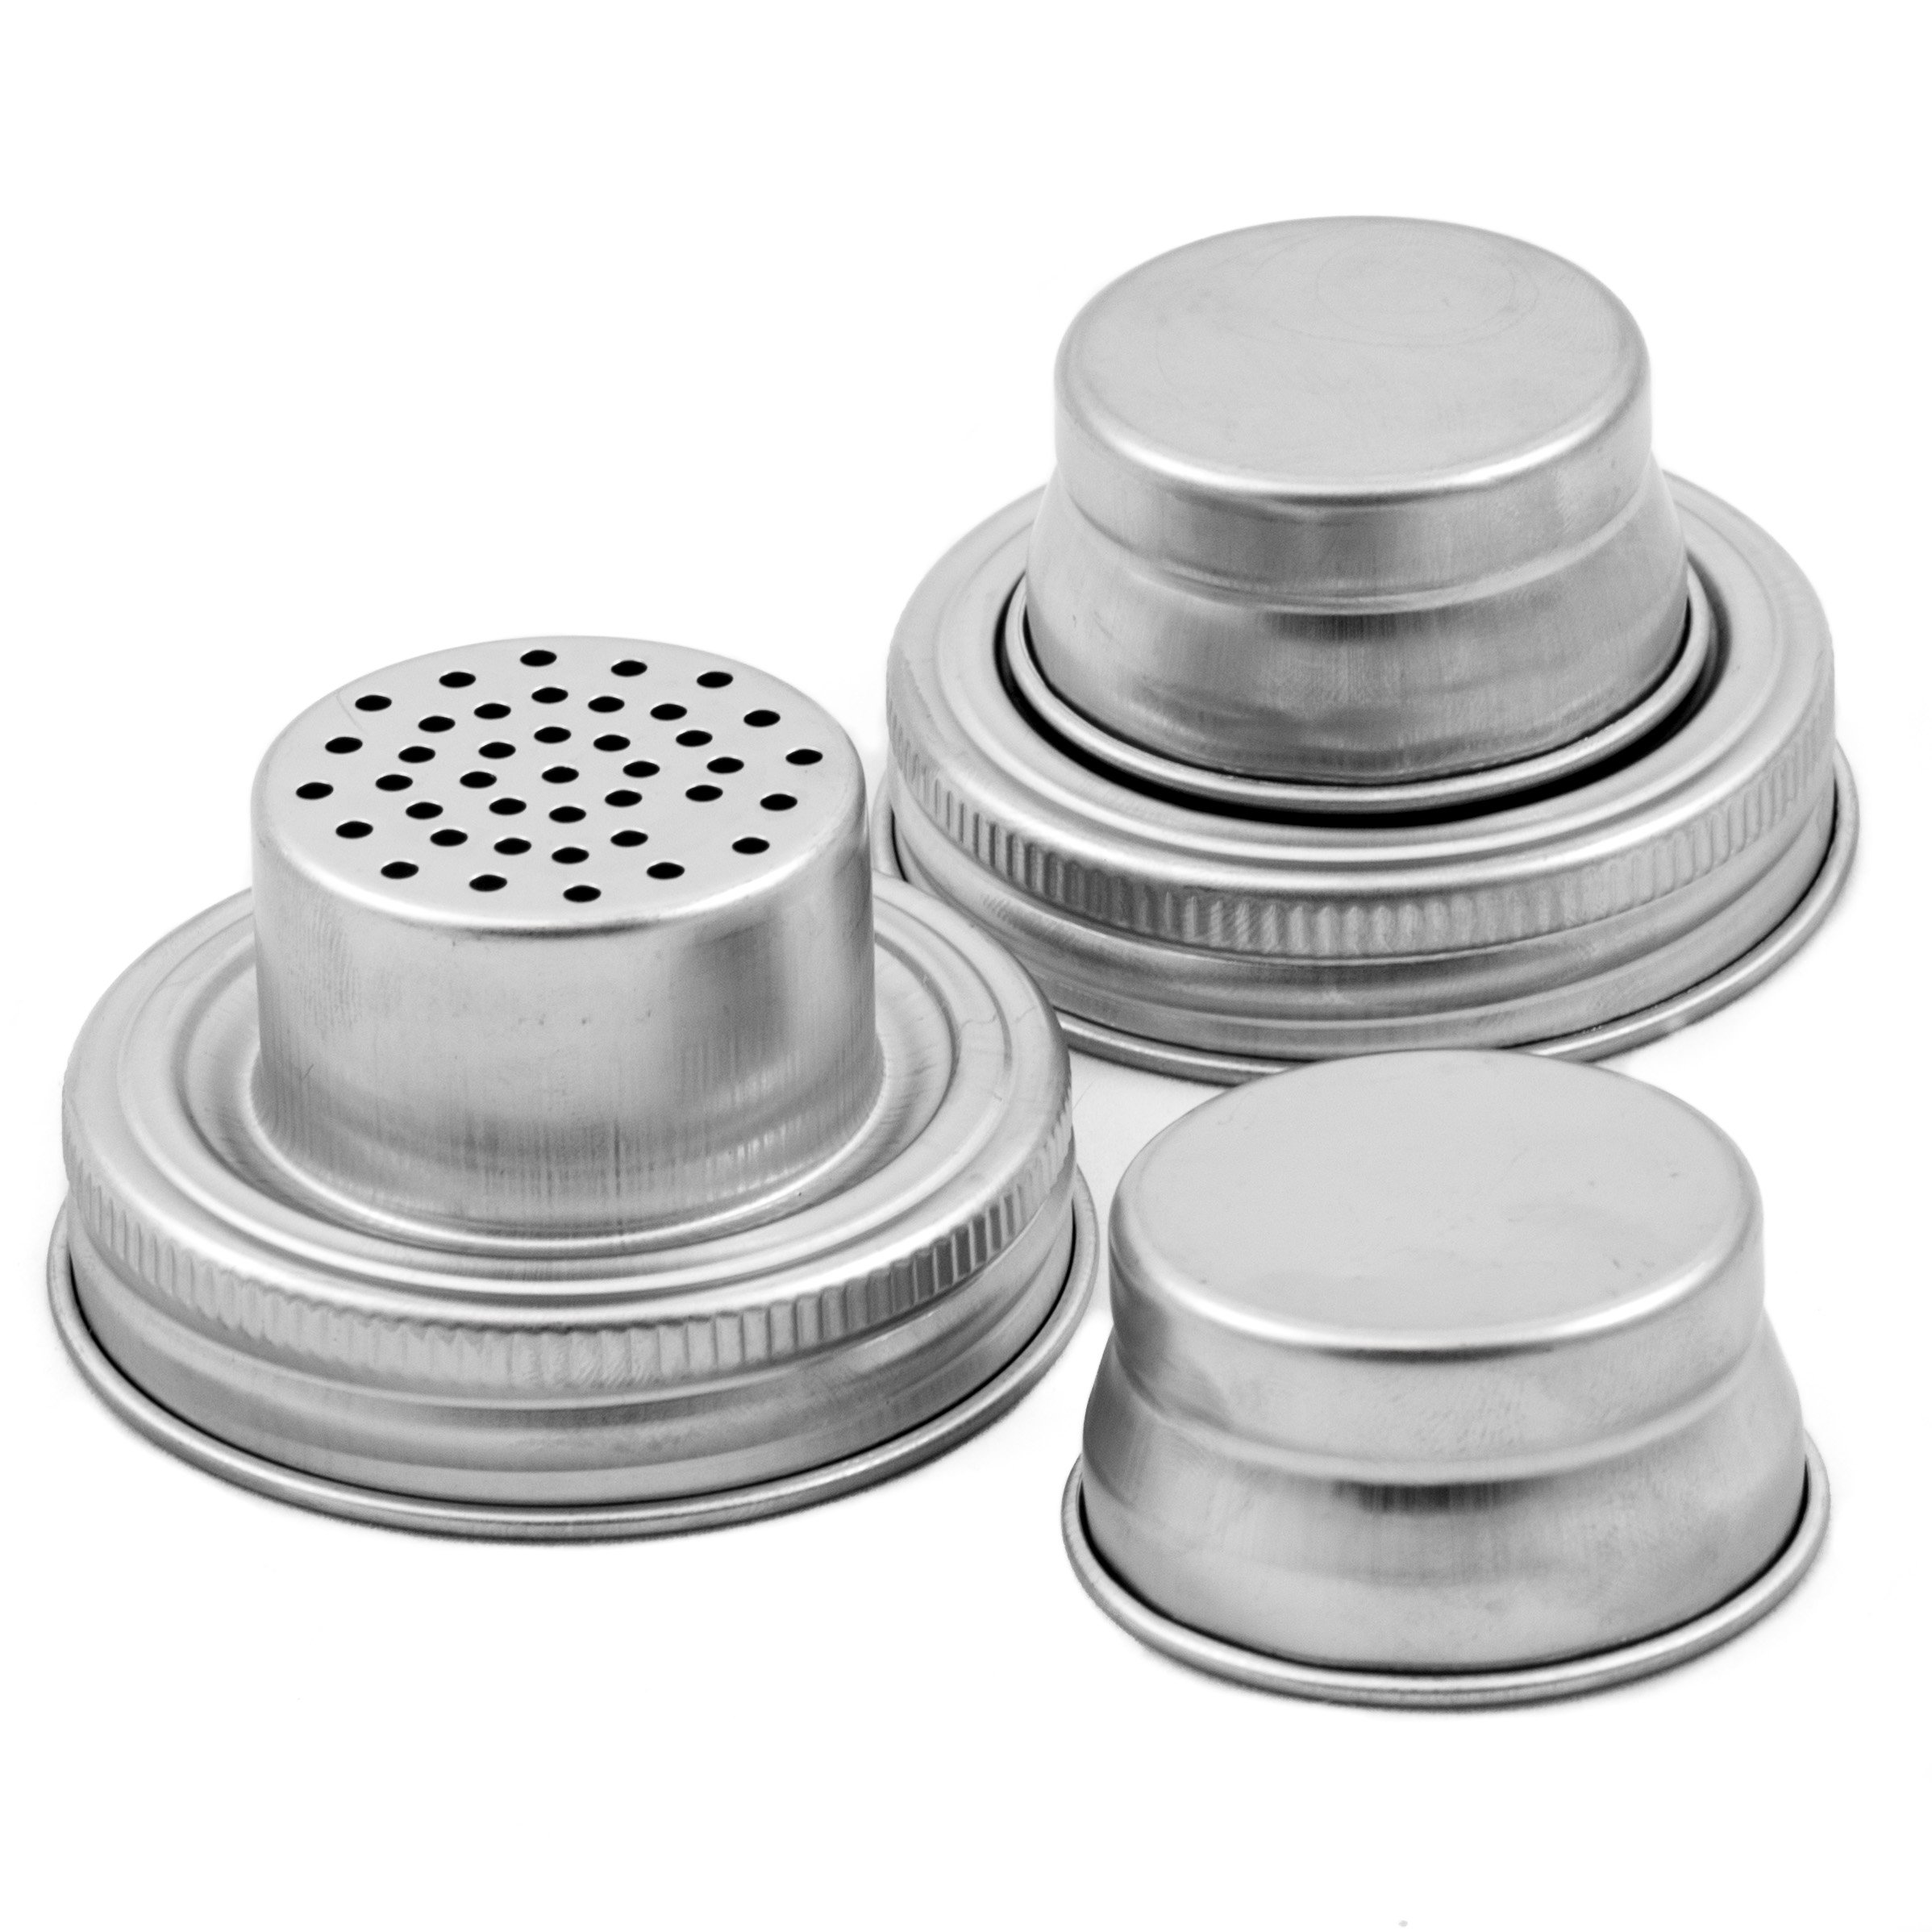 Mason Jar Shaker Lids - 2 Pack - Awesome to Shake Cocktails or Your Best Dry Rub - Mix Spices, Dredge Flour, Sugar & More - Fits Any Regular Mouth Canning Jar - Durable, Rust Proof Stainless Steel